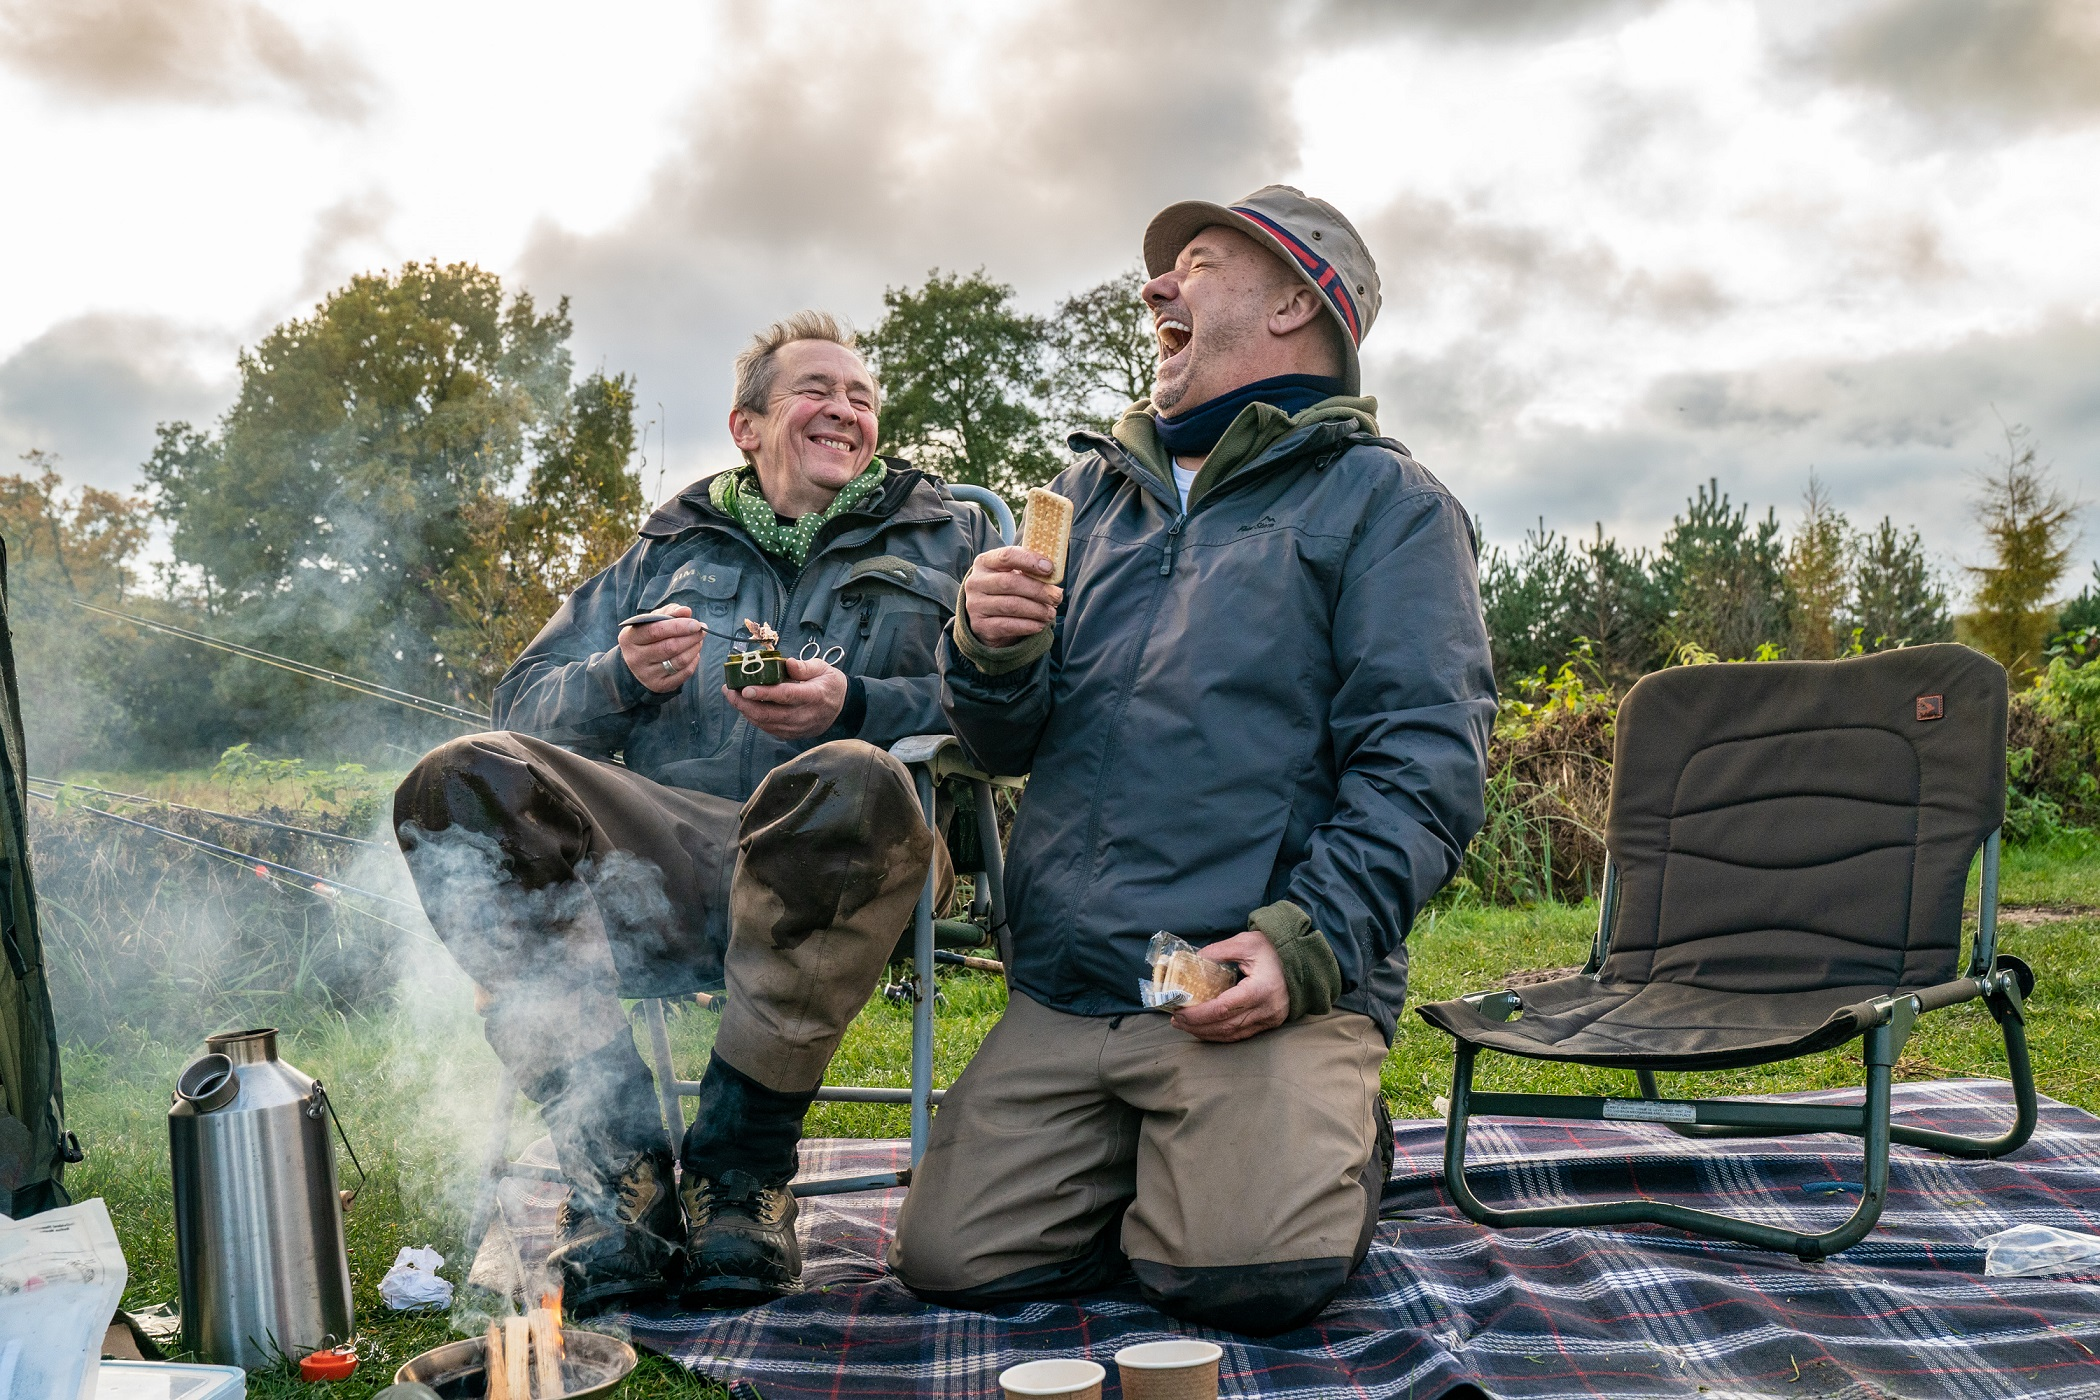 Mortimer & Whitehouse Gone Fishing S3 Paul Whitehouse, Bob Mortimer Picnic Beside A Norfolk Lake SMALL